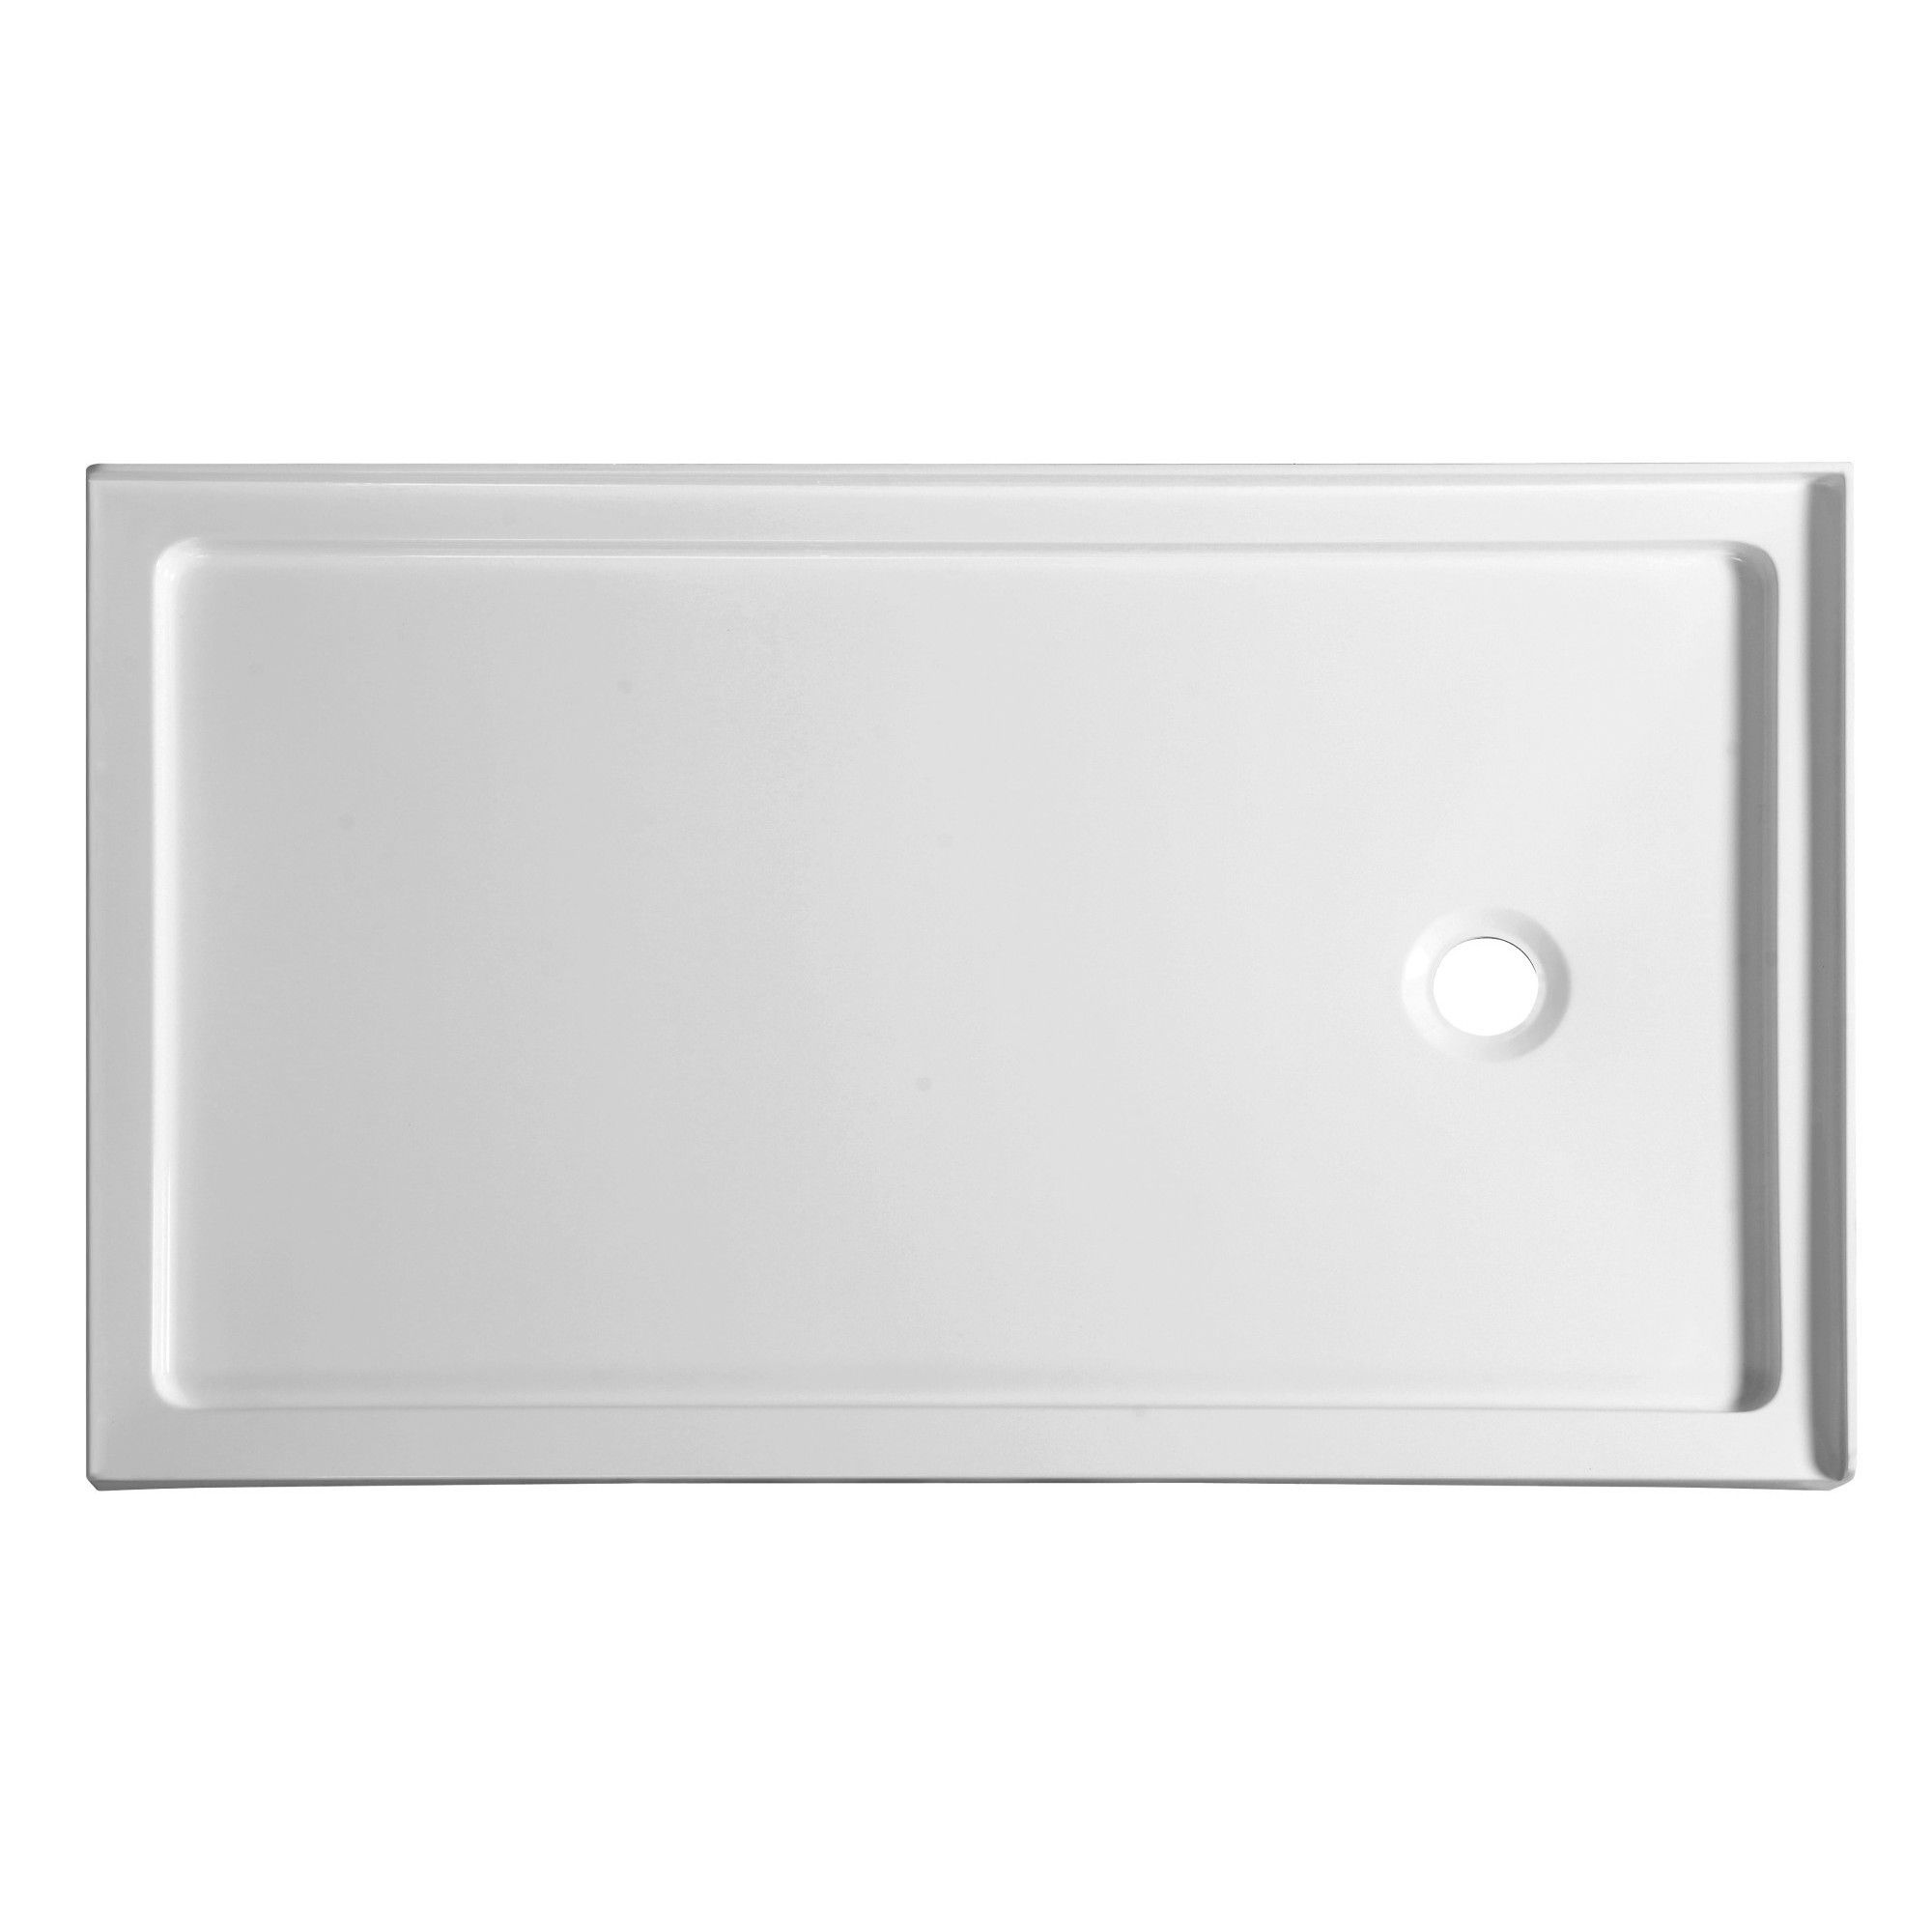 Anzzi Nautilus Series 60 In. X 36 In. Double Threshold Shower Base In White